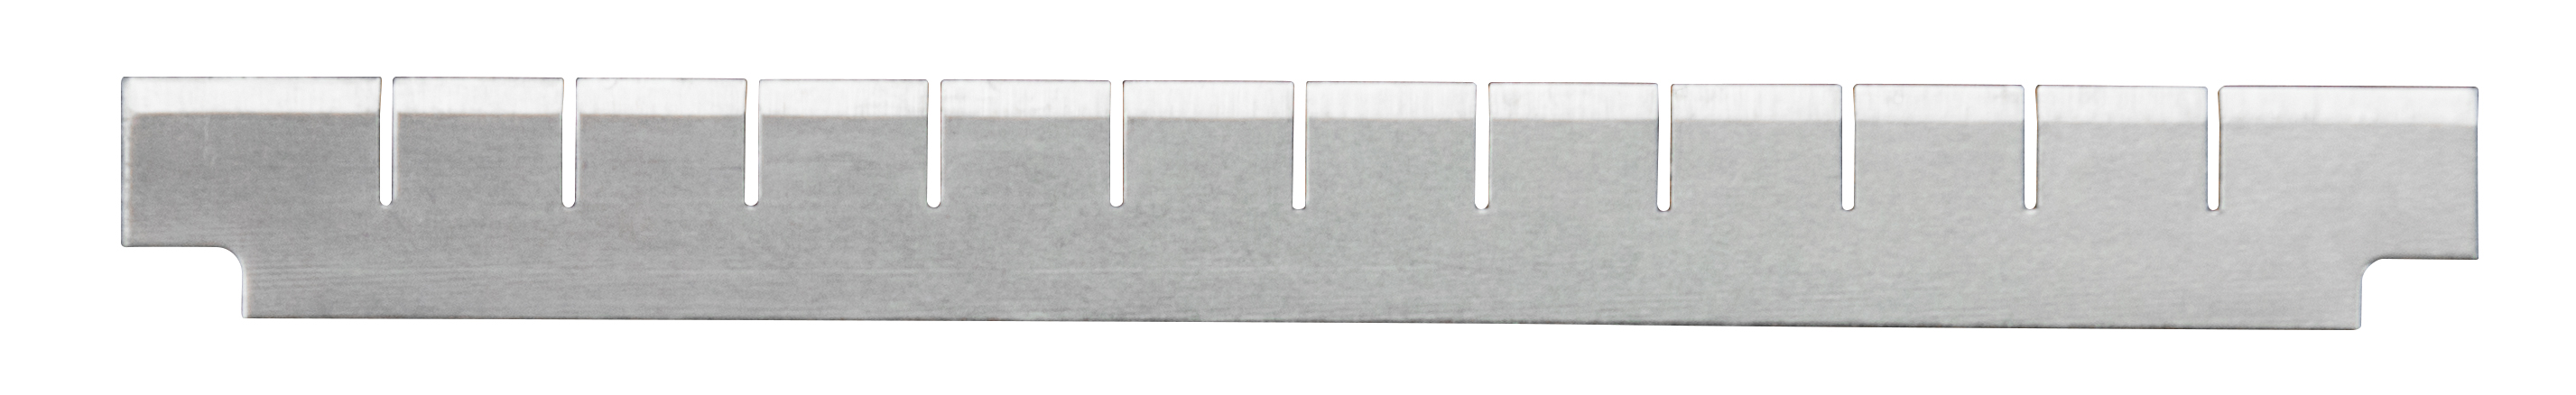 Winco HFC-250R replacement blades for hfc series